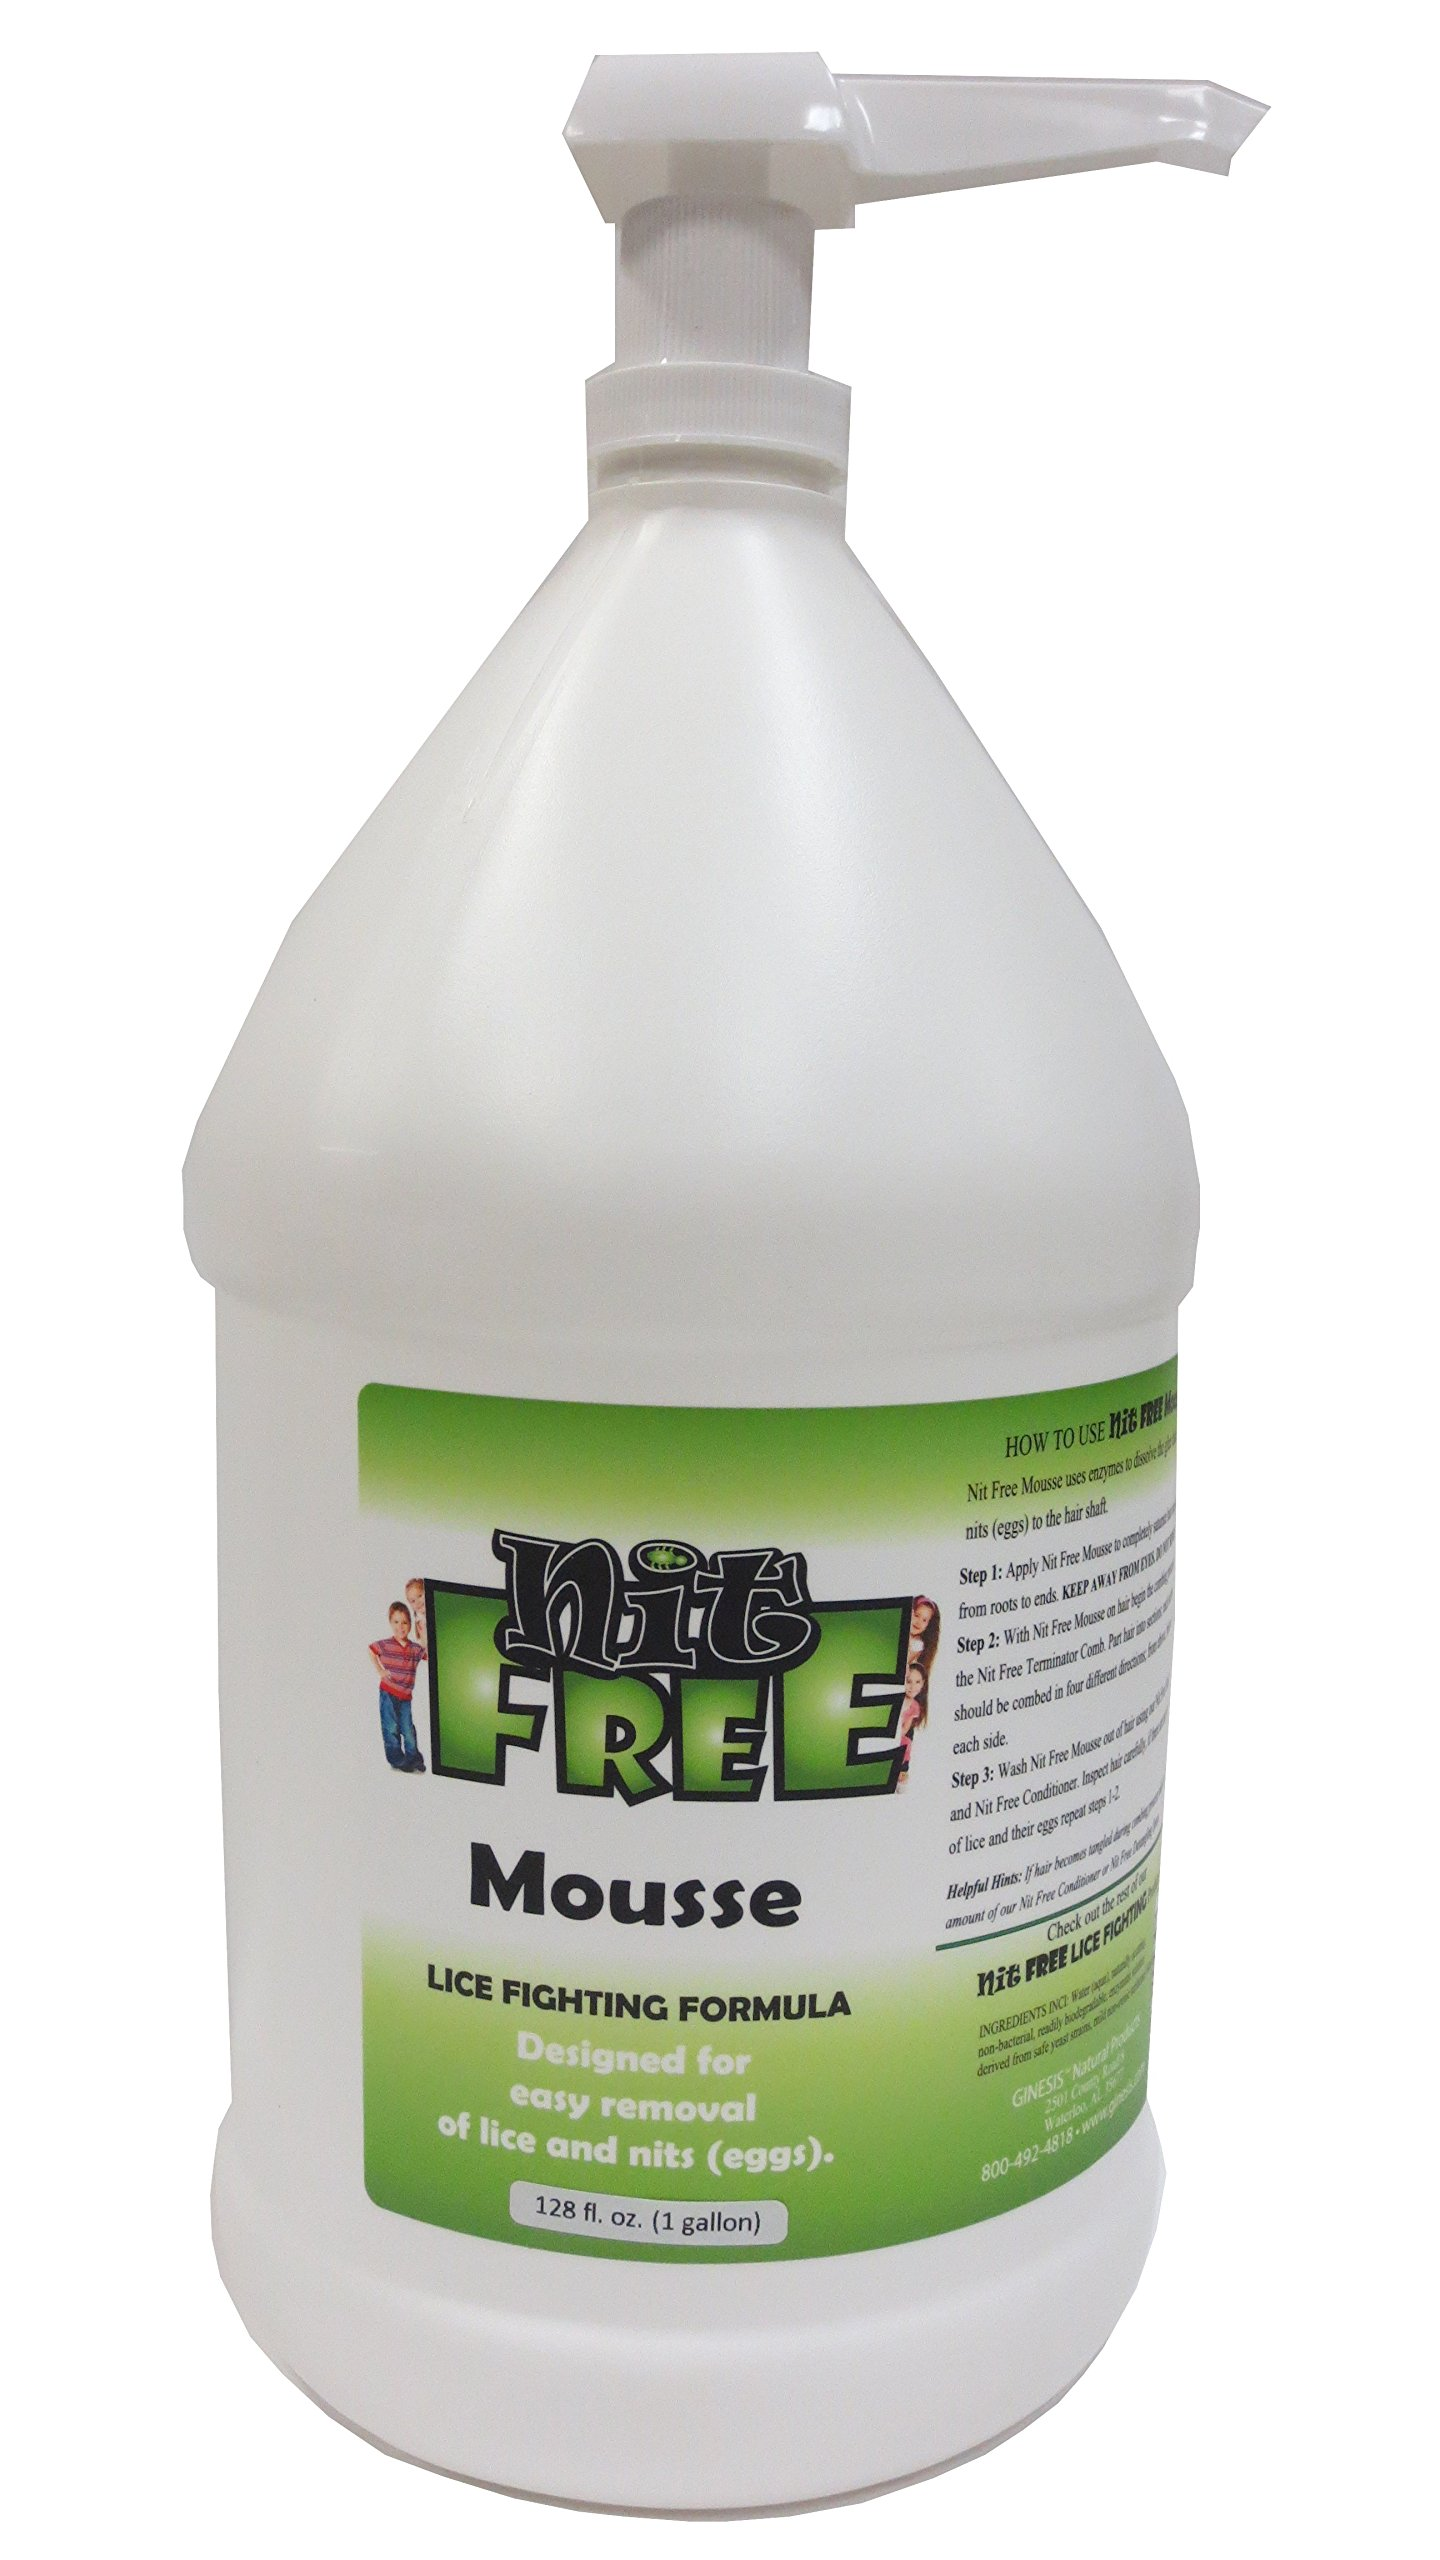 Nit Free Lice and Nit(egg) Eliminating Enzyme Nit Glue Dissolver. Pre comb out Enzyme Treatment for Removing Head lice, and their Eggs. Nit Free 2 in 1 Makes Combing Efficent. 1 Treatment and Done.128 FL OZ by Nit Free